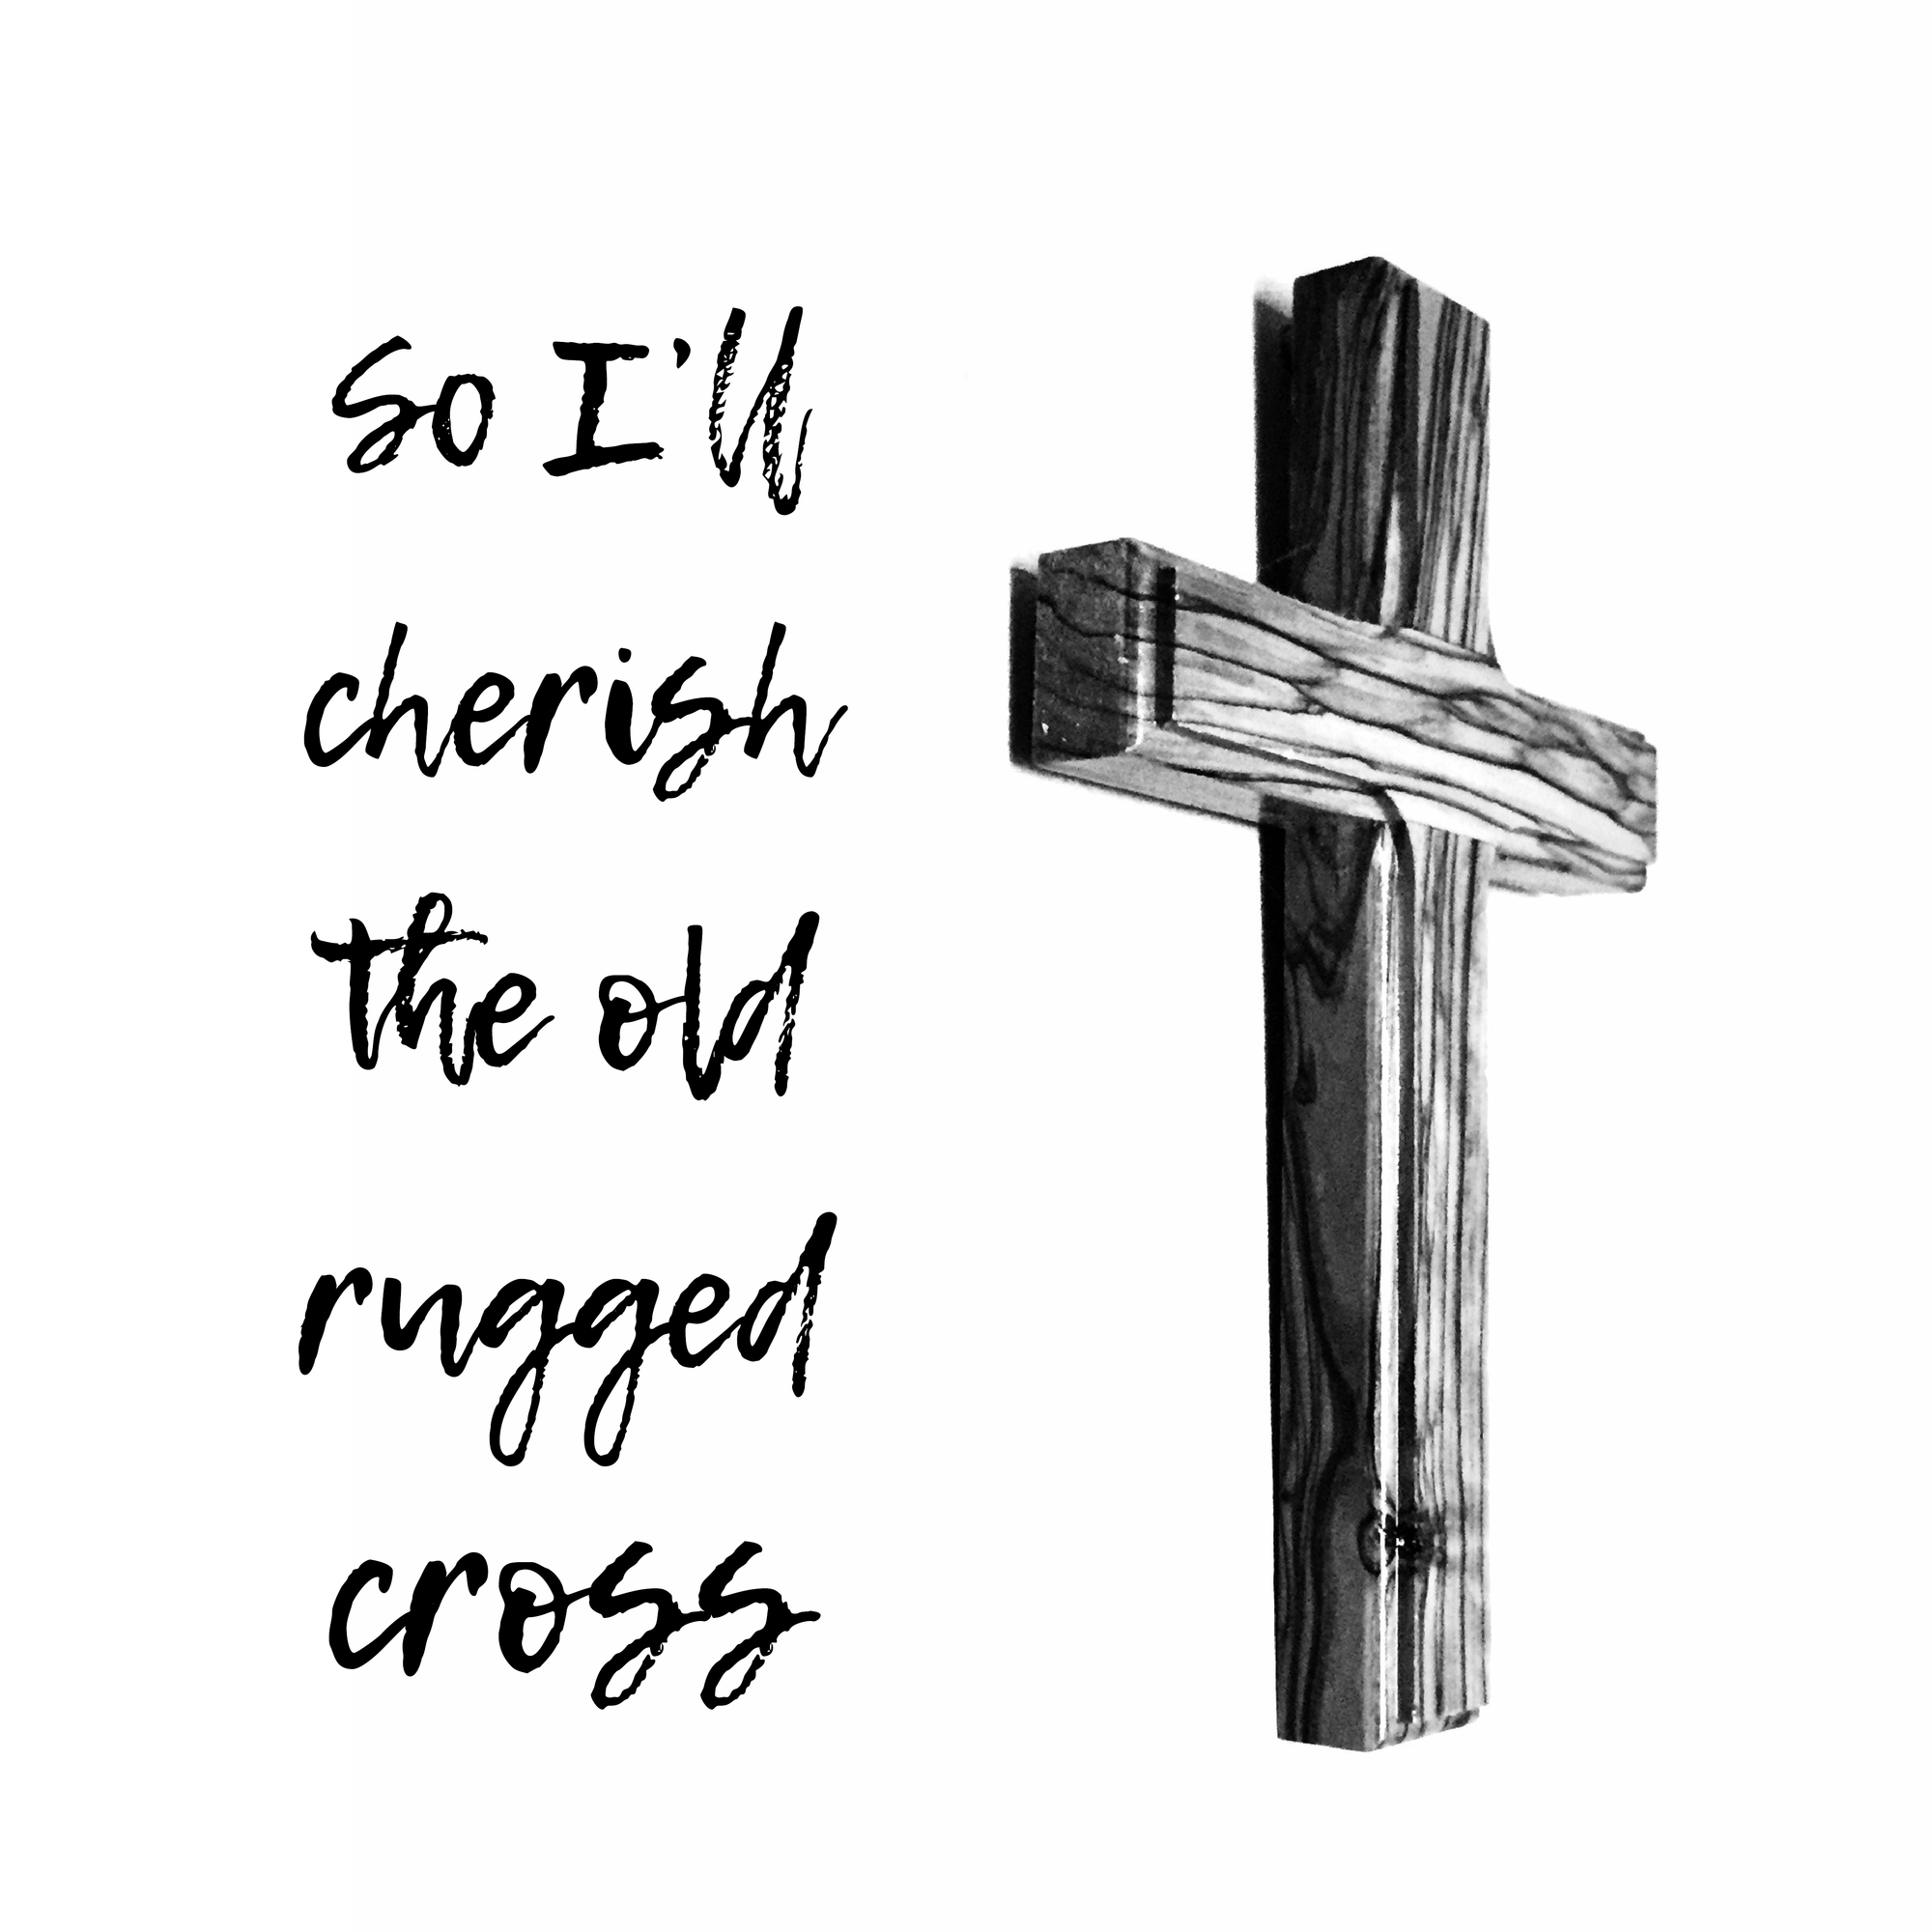 So I Ll Cherish The Old Rugged Cross Till My Trophies At Last I Lay Down And I Will Cling To The Old Rugged Cross And Exchang Old Rugged Cross Old Things